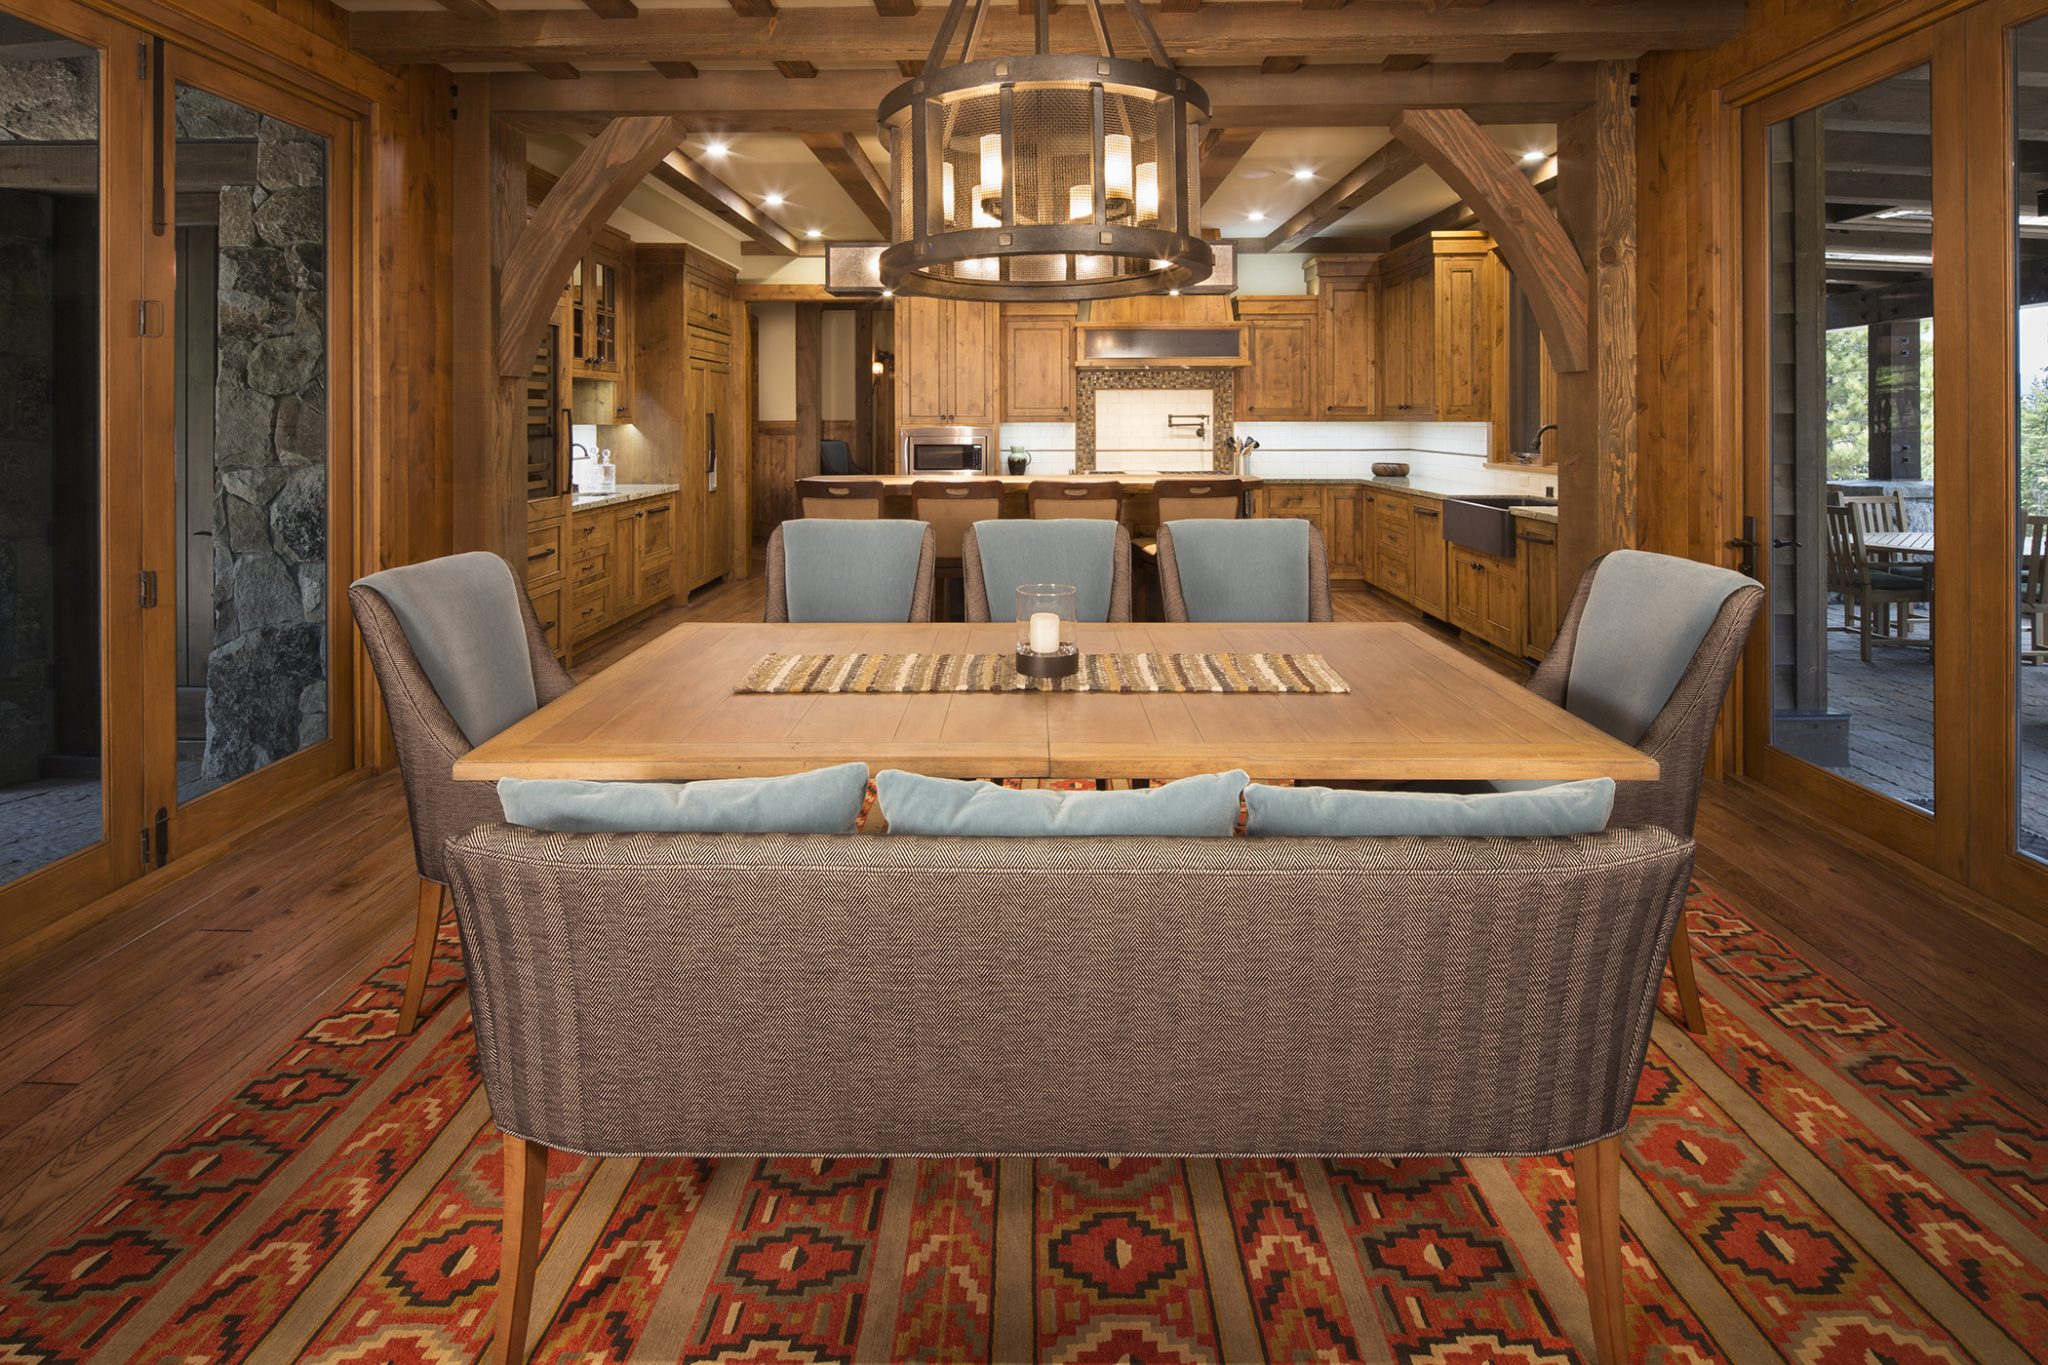 Mountain Comfort in Martis Camp - dining room and kitchen by Aspen Leaf Interiors, Inc.